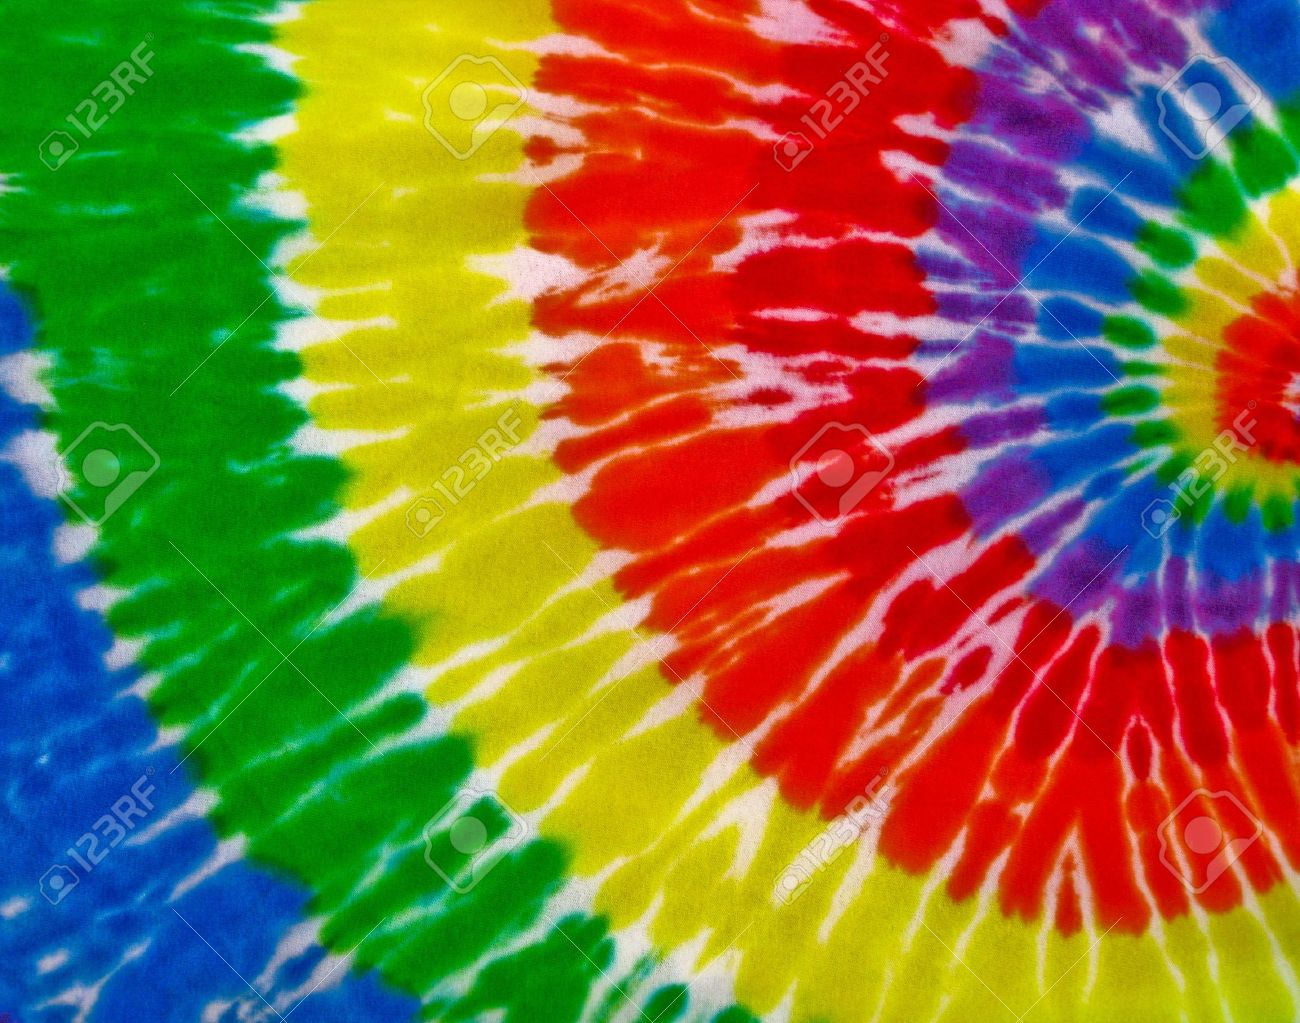 Tie dye patterns free dress images tie dye patterns free voltagebd Image collections